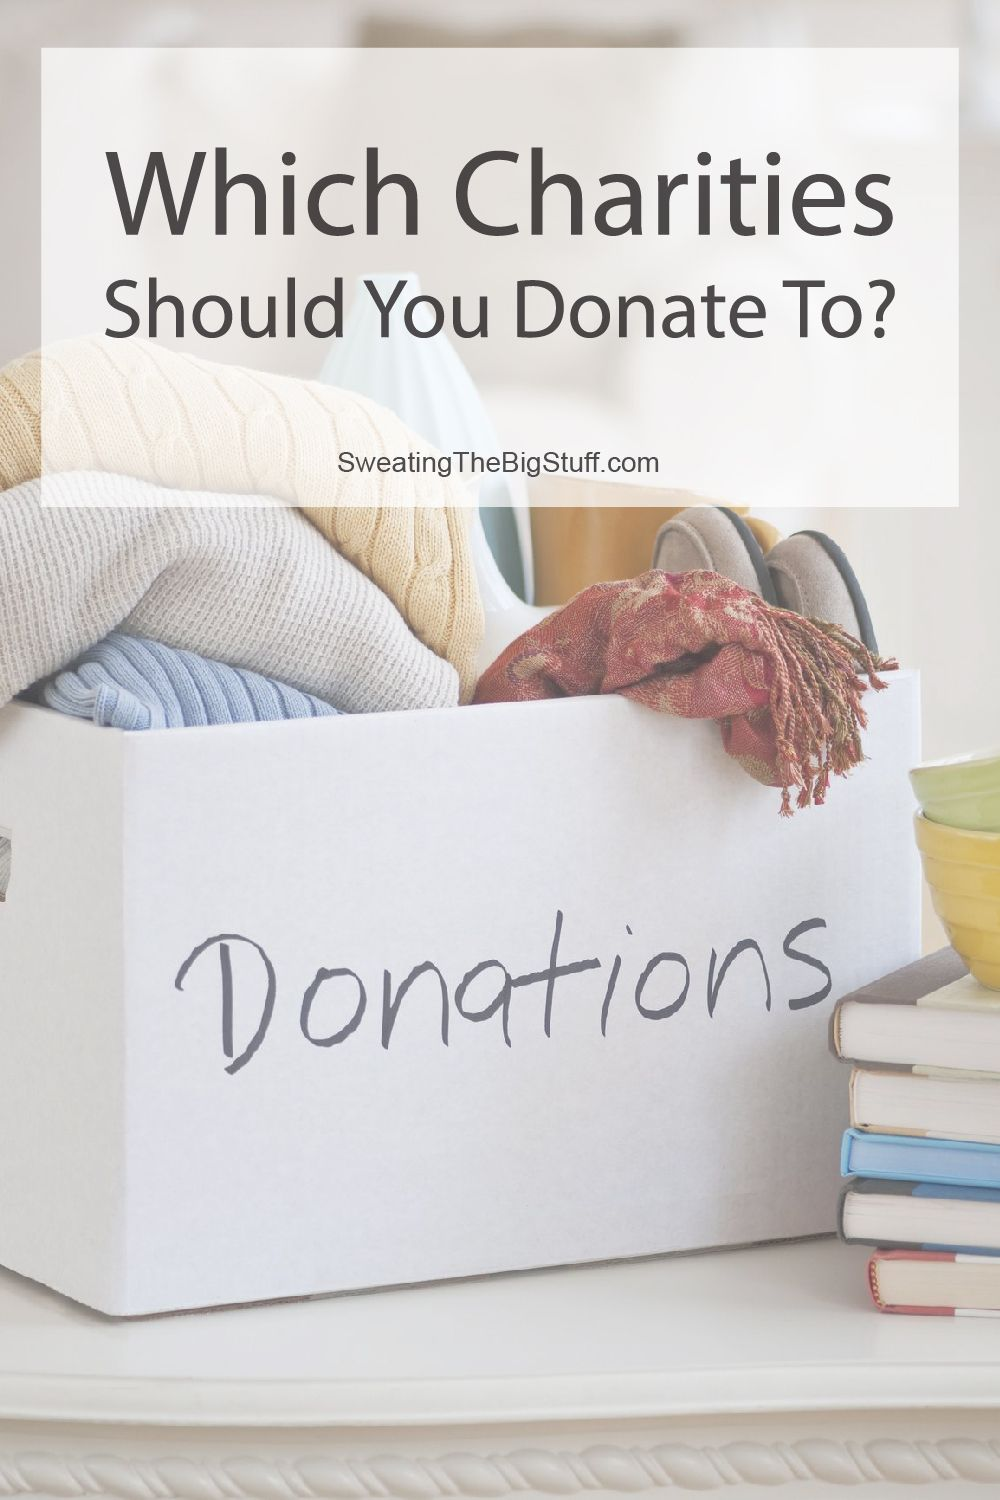 Which Charities Should You Donate To?